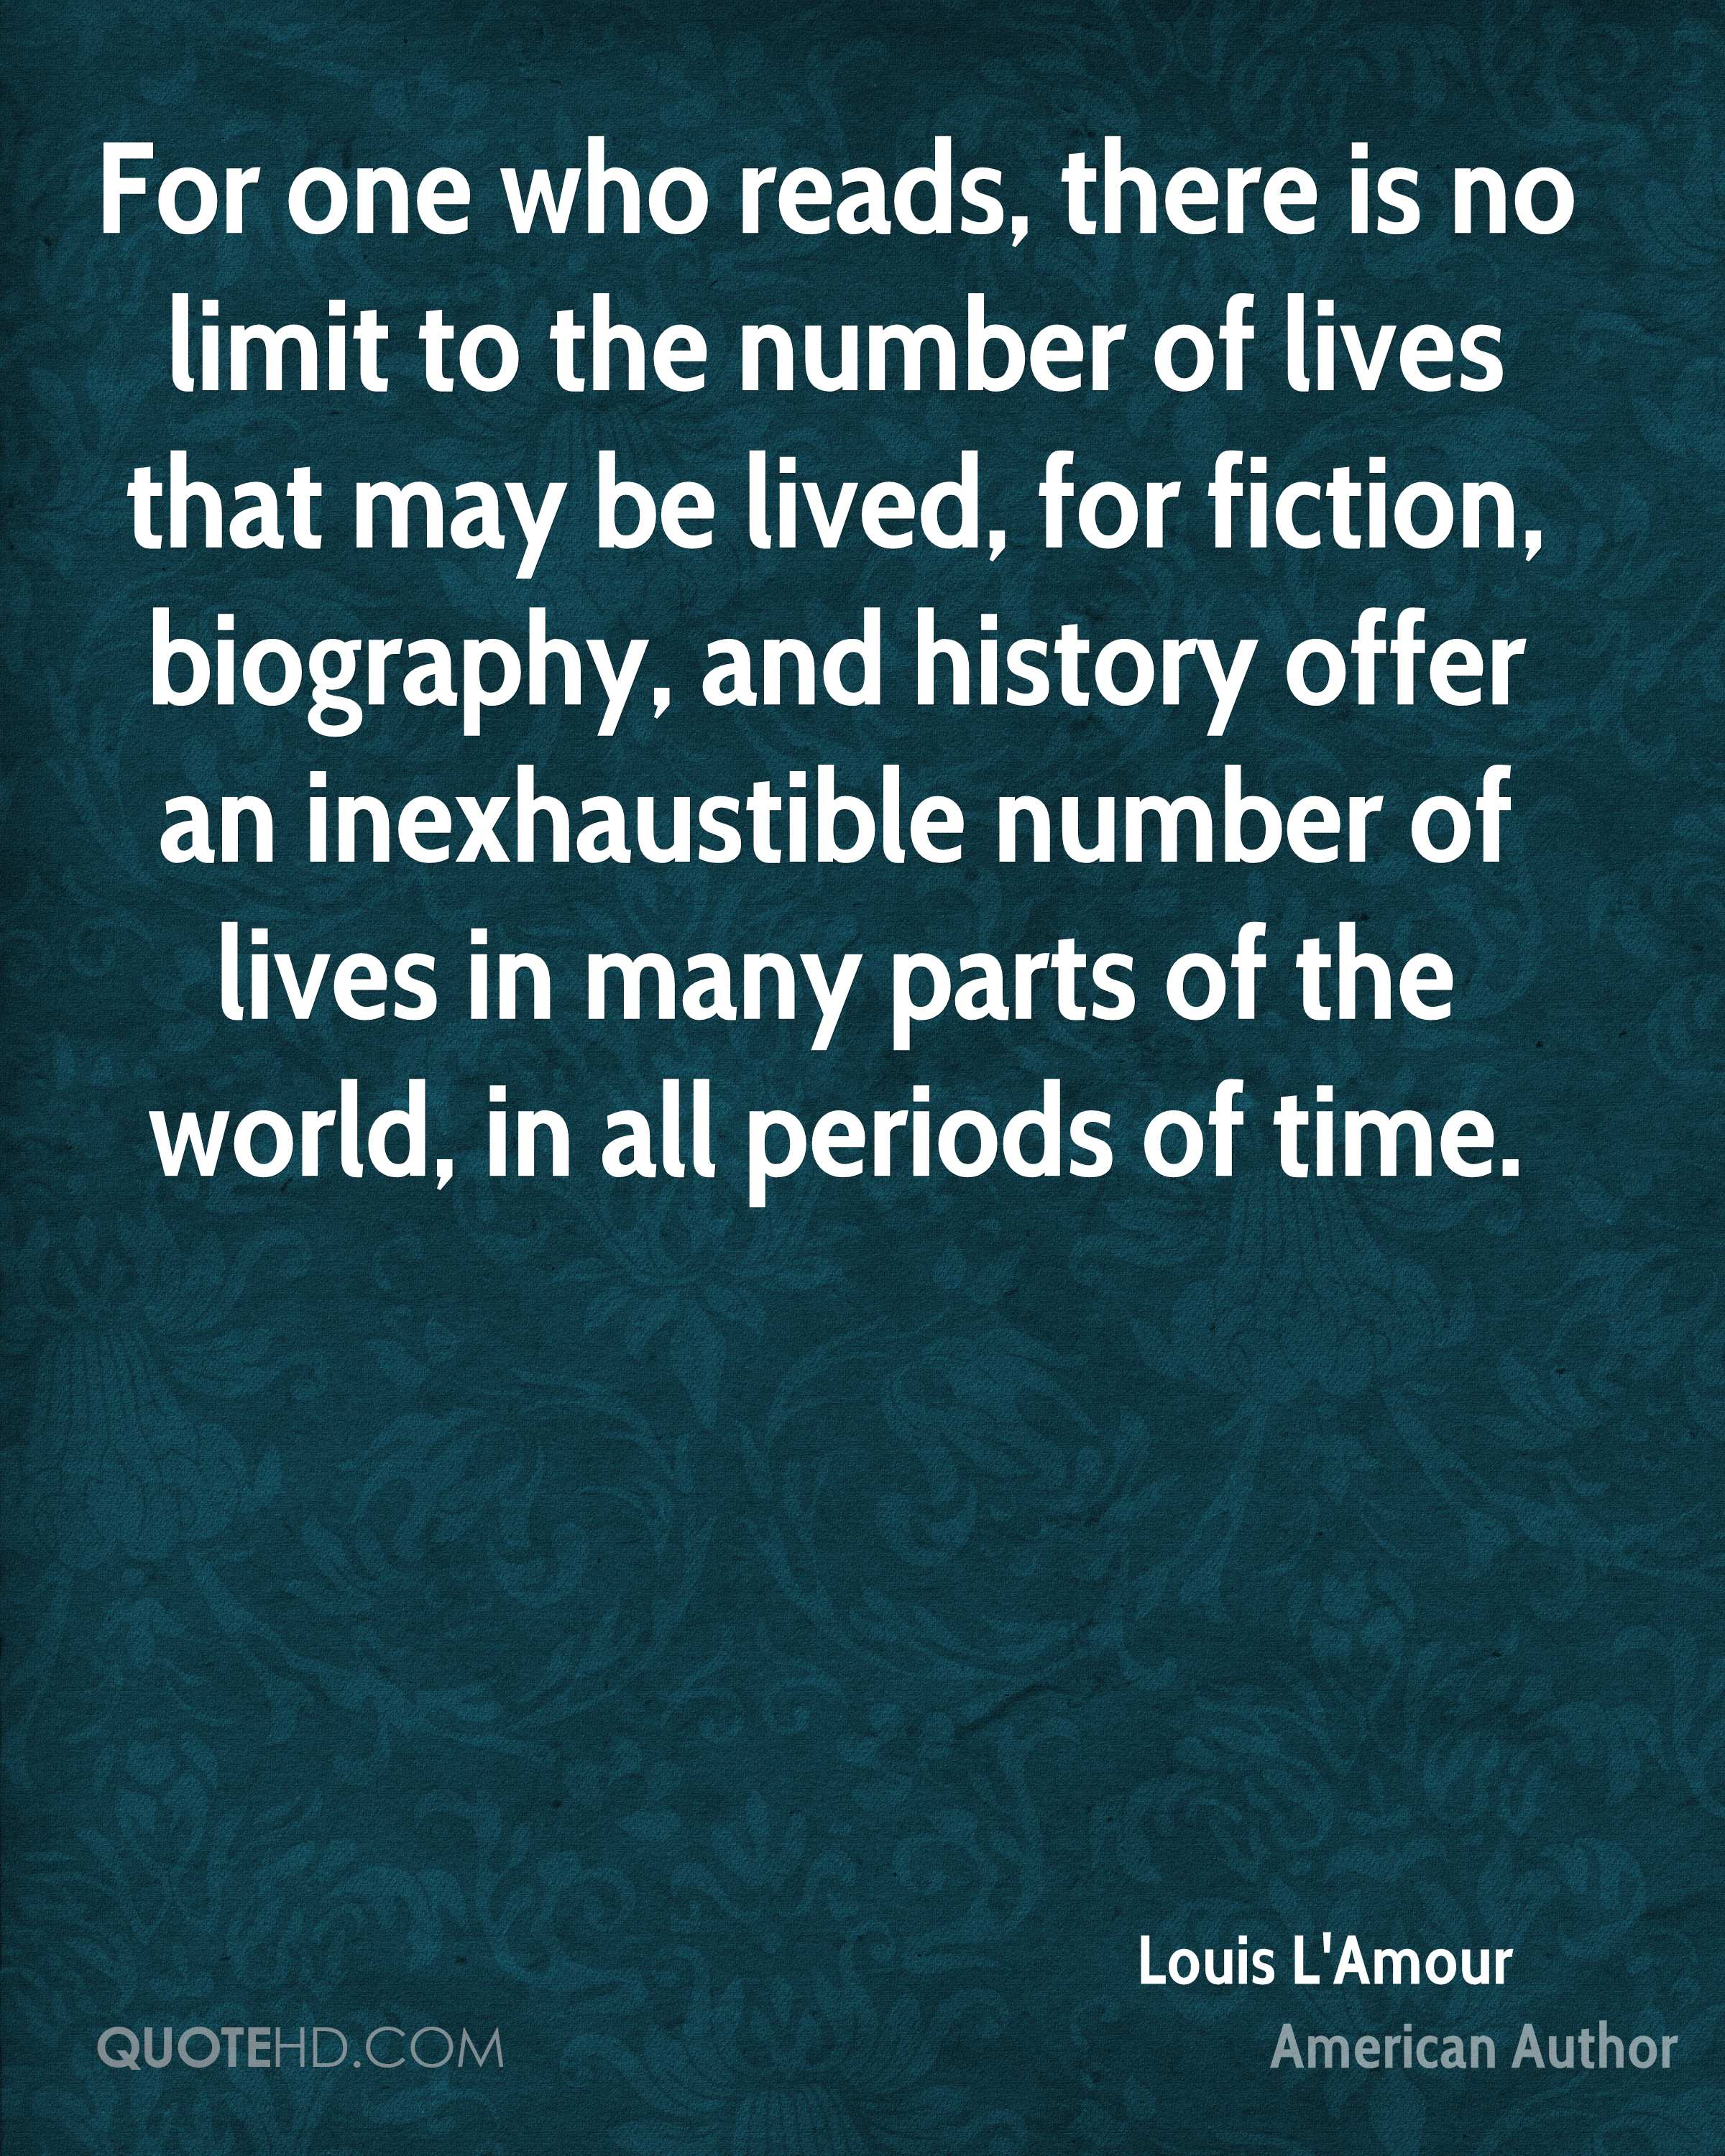 For one who reads, there is no limit to the number of lives that may be lived, for fiction, biography, and history offer an inexhaustible number of lives in many parts of the world, in all periods of time.